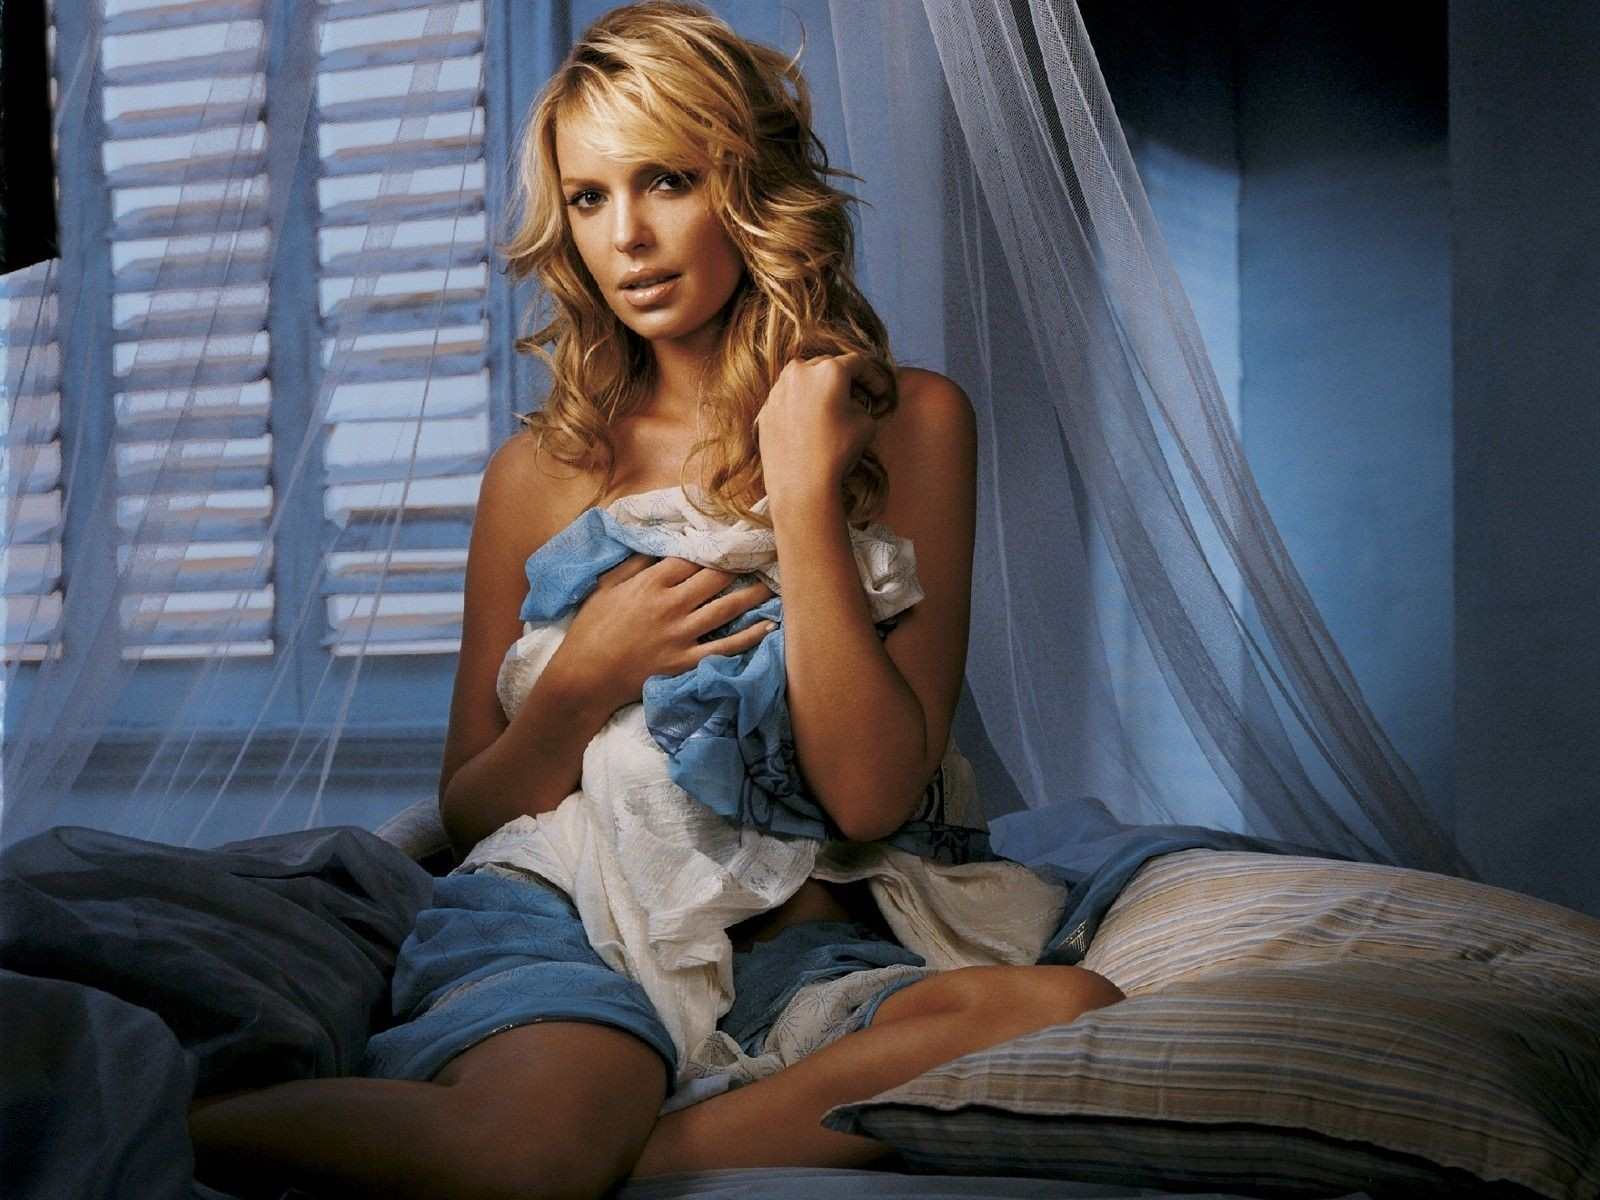 Wallpaper - a letto con Katherine Heigl